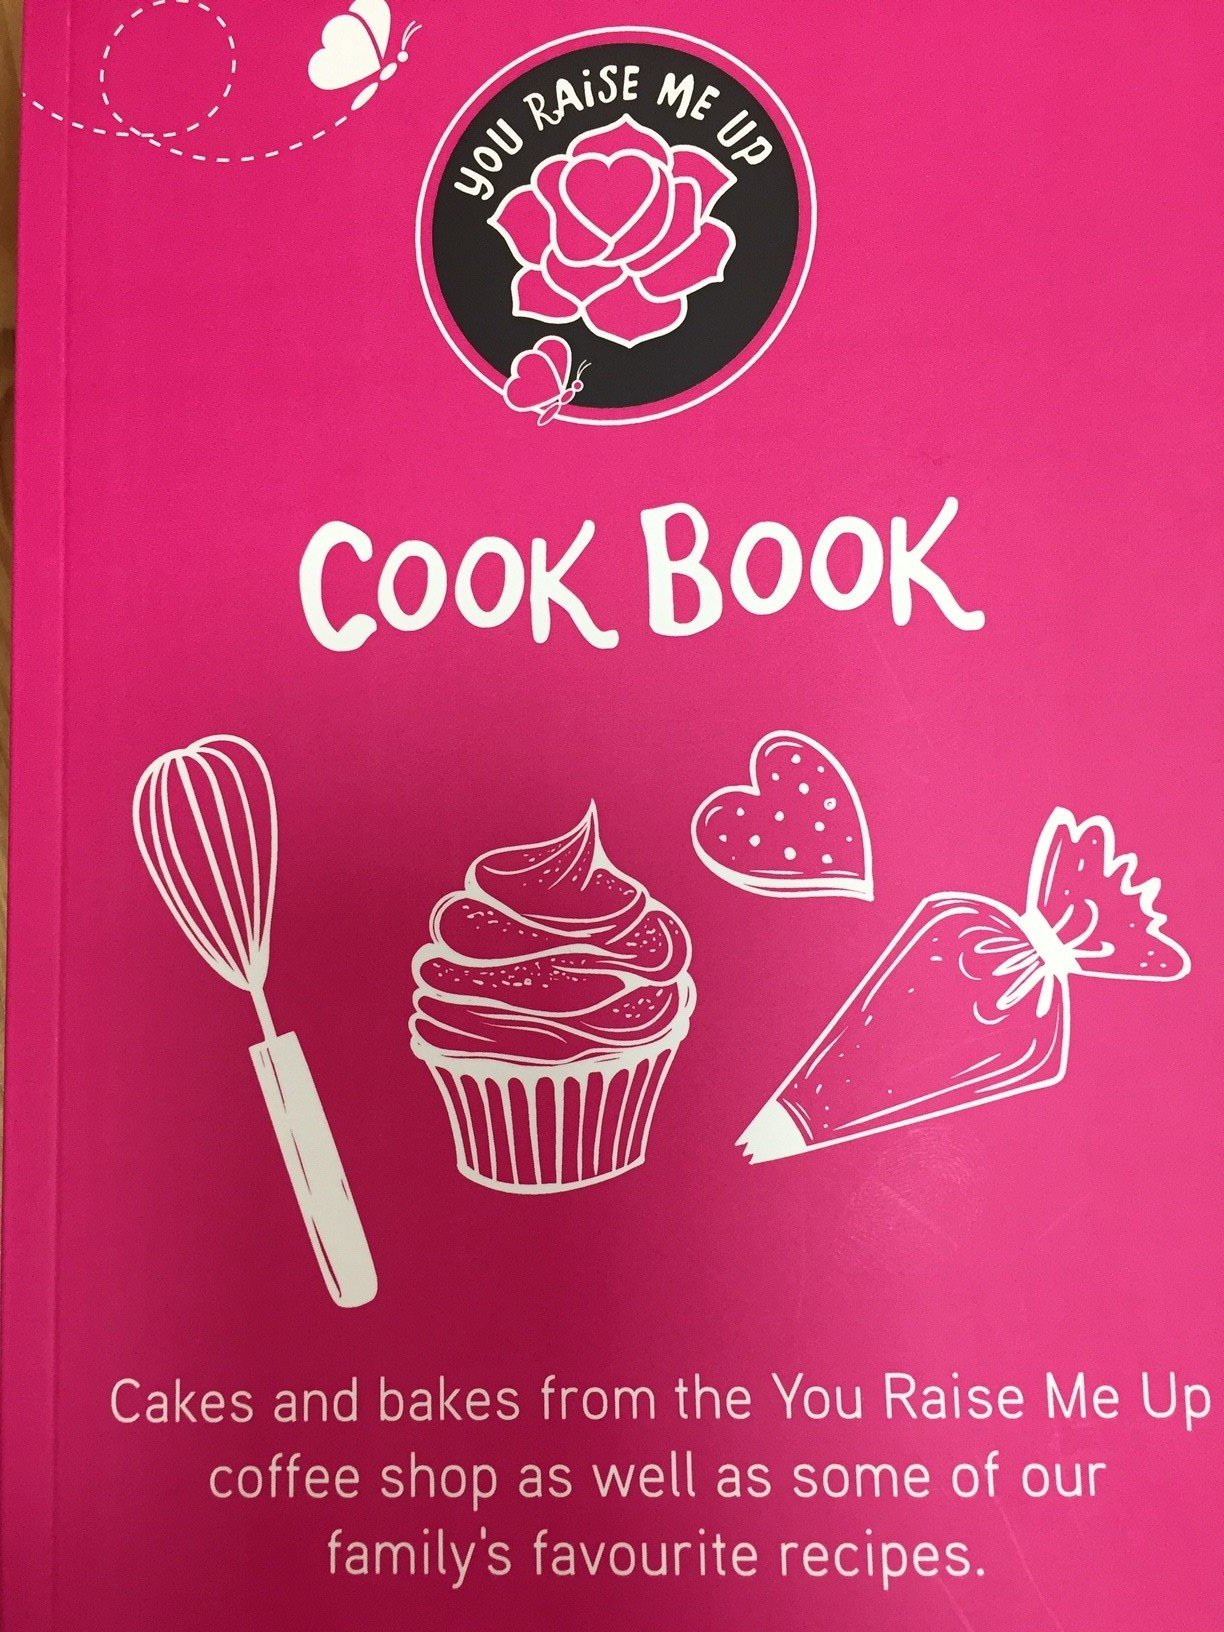 THE YOU RAISE ME UP COOKBOOK 00005